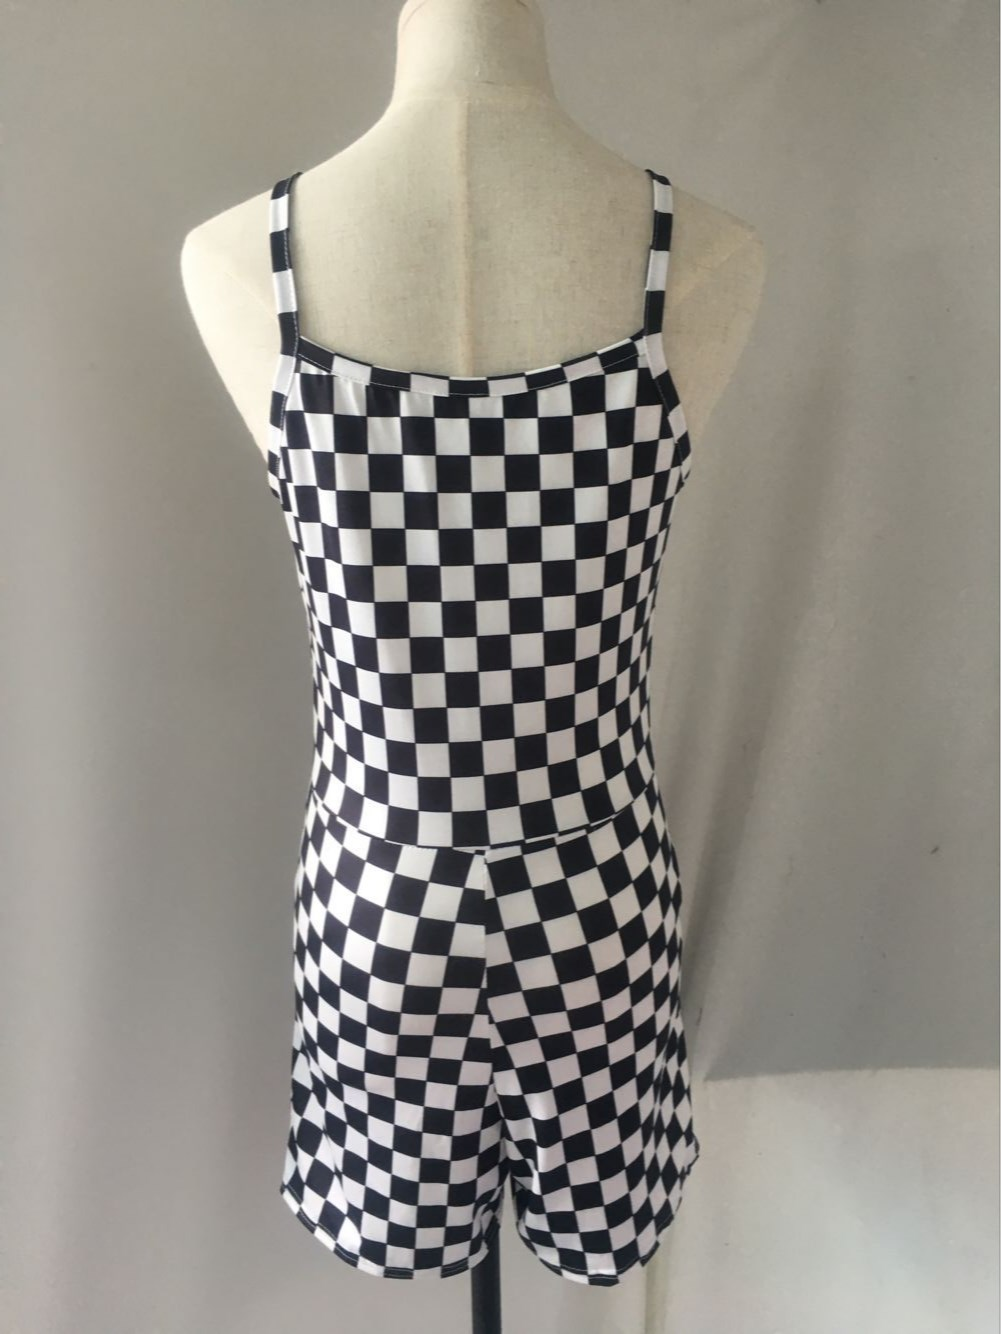 6aec9fcc257 2018 Summer Women Black White Checkered Backless Strapless Romper  Checkerboard Casual Short Overalls-in Rompers from Women s Clothing on  Aliexpress.com ...